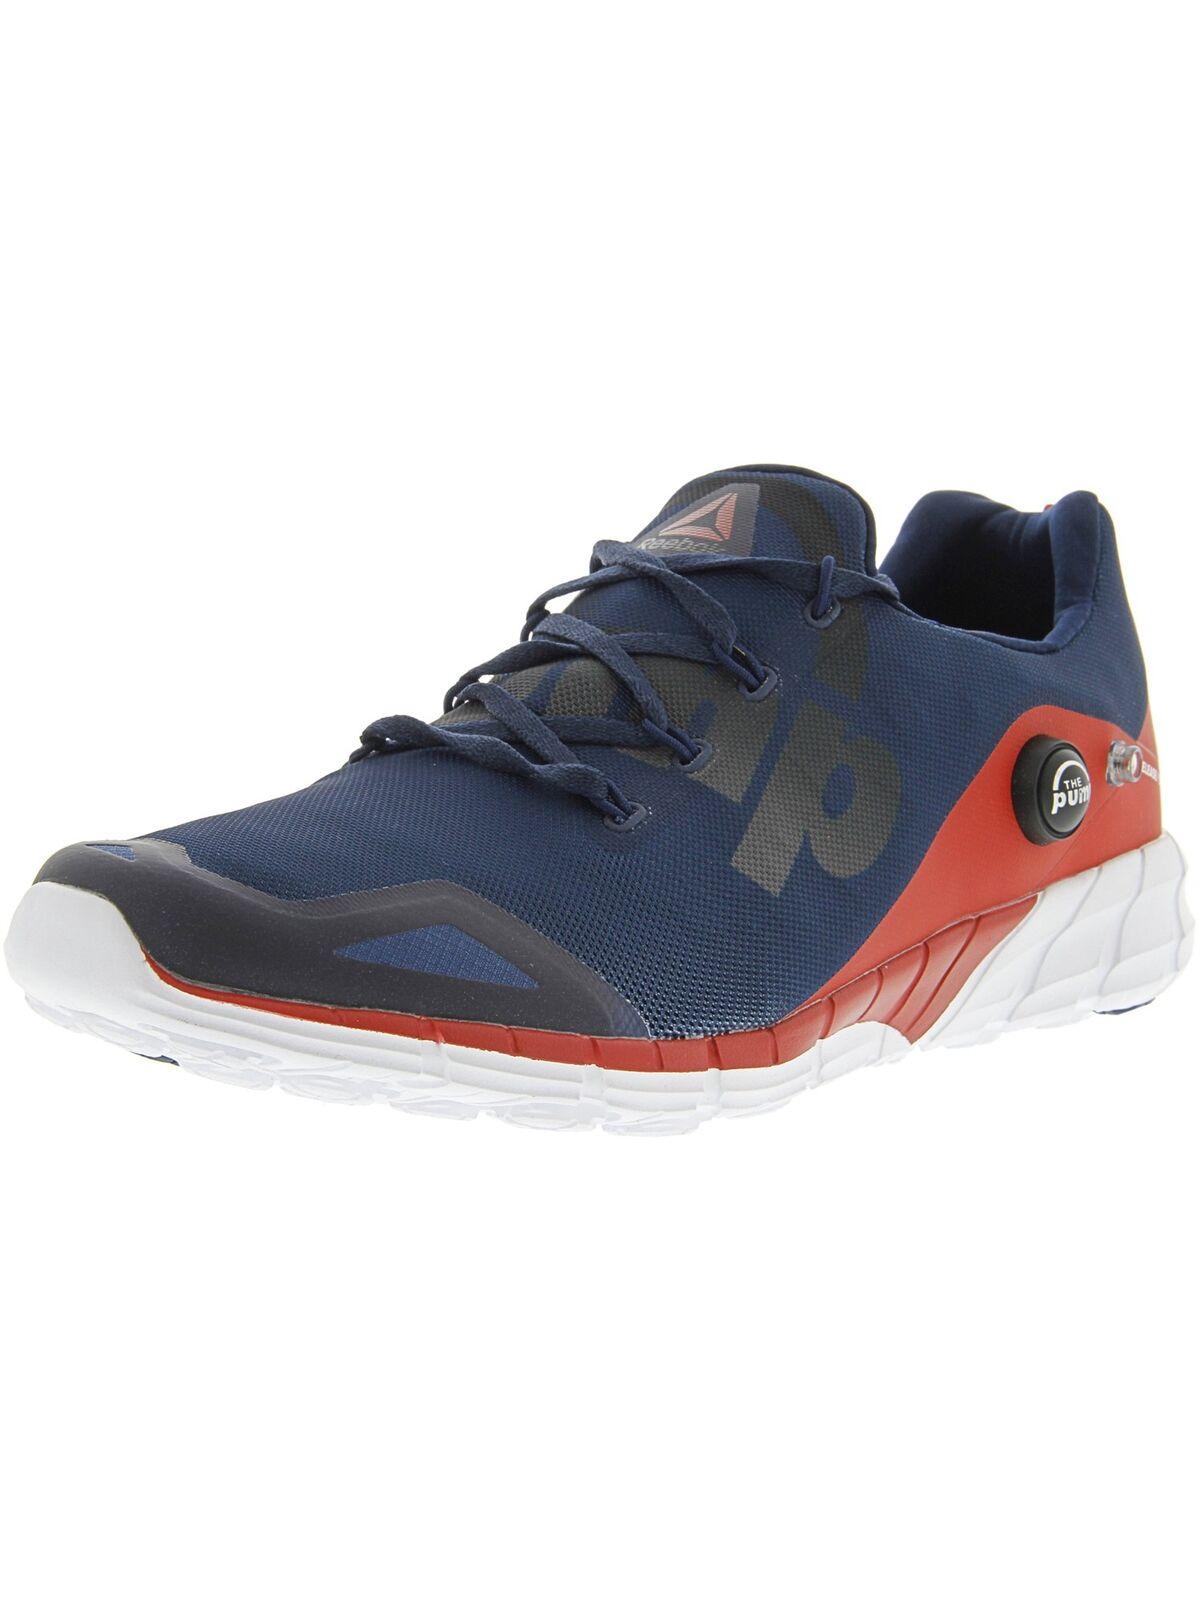 Reebok Men's Zpump Fusion 2.0 Ankle-High Running shoes